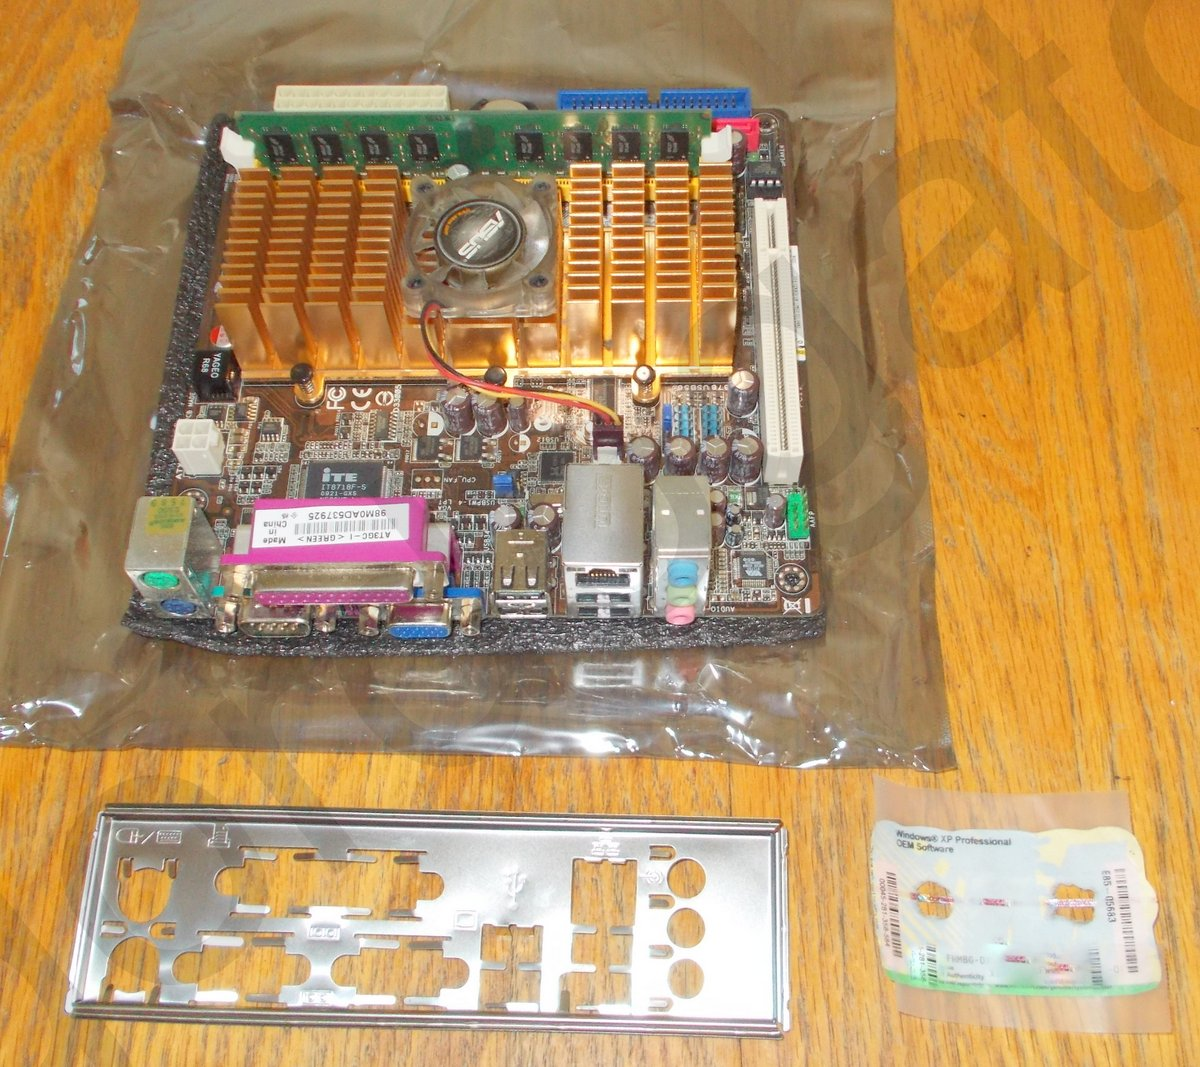 Details about ASUS AT3GC-I Mini-ITX Motherboard, 2GB RAM, Windows XP on